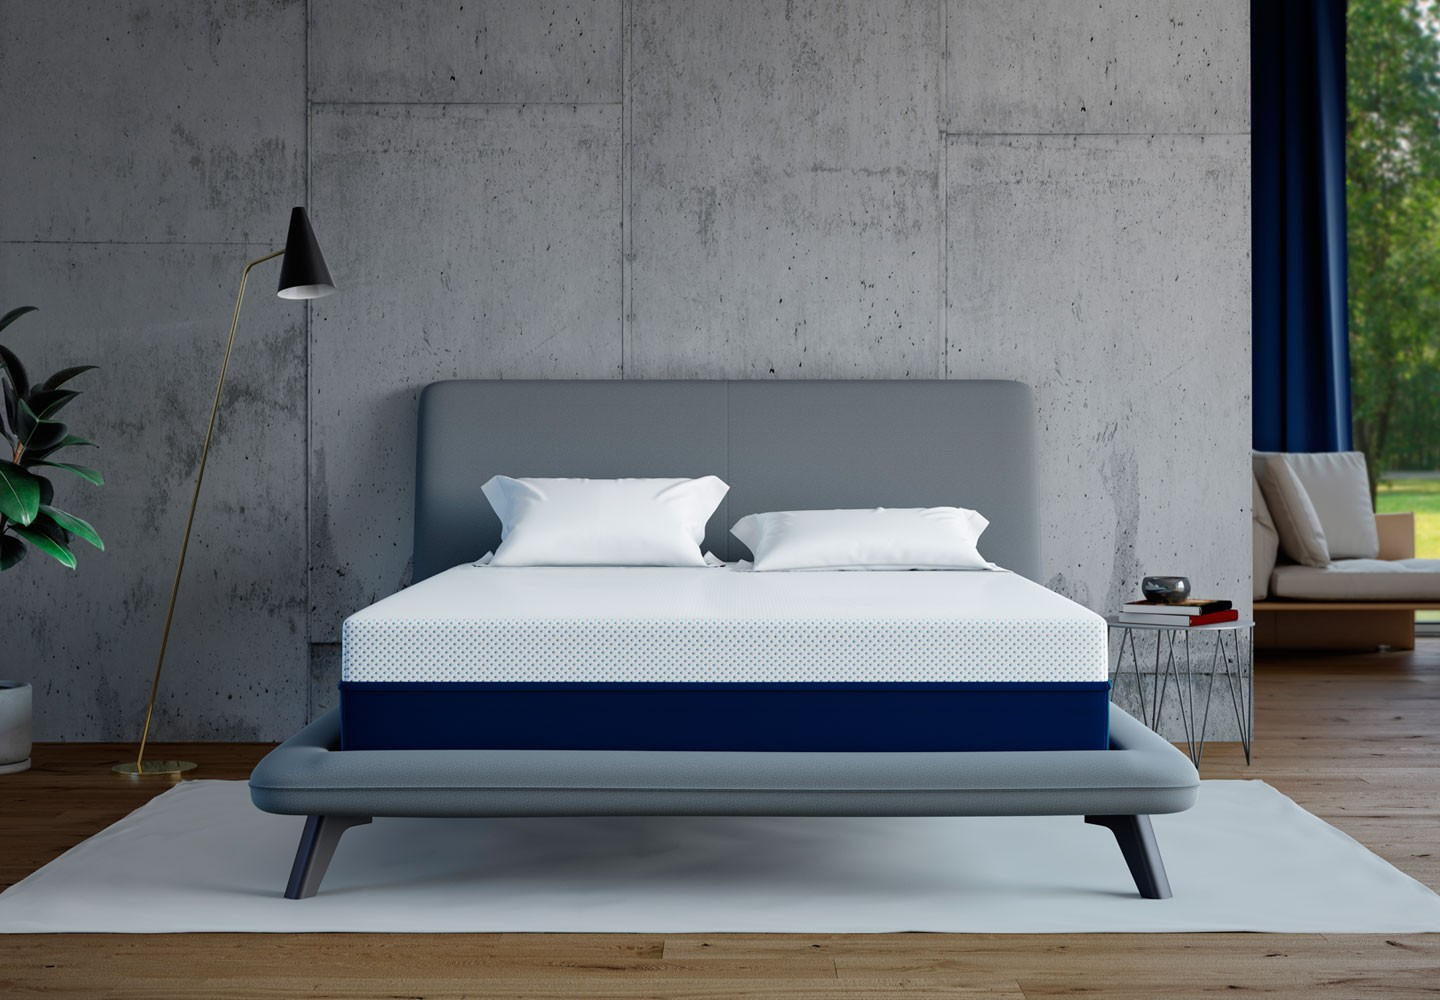 Amerisleep's AS3 Bed is perfect for side and back sleepers.